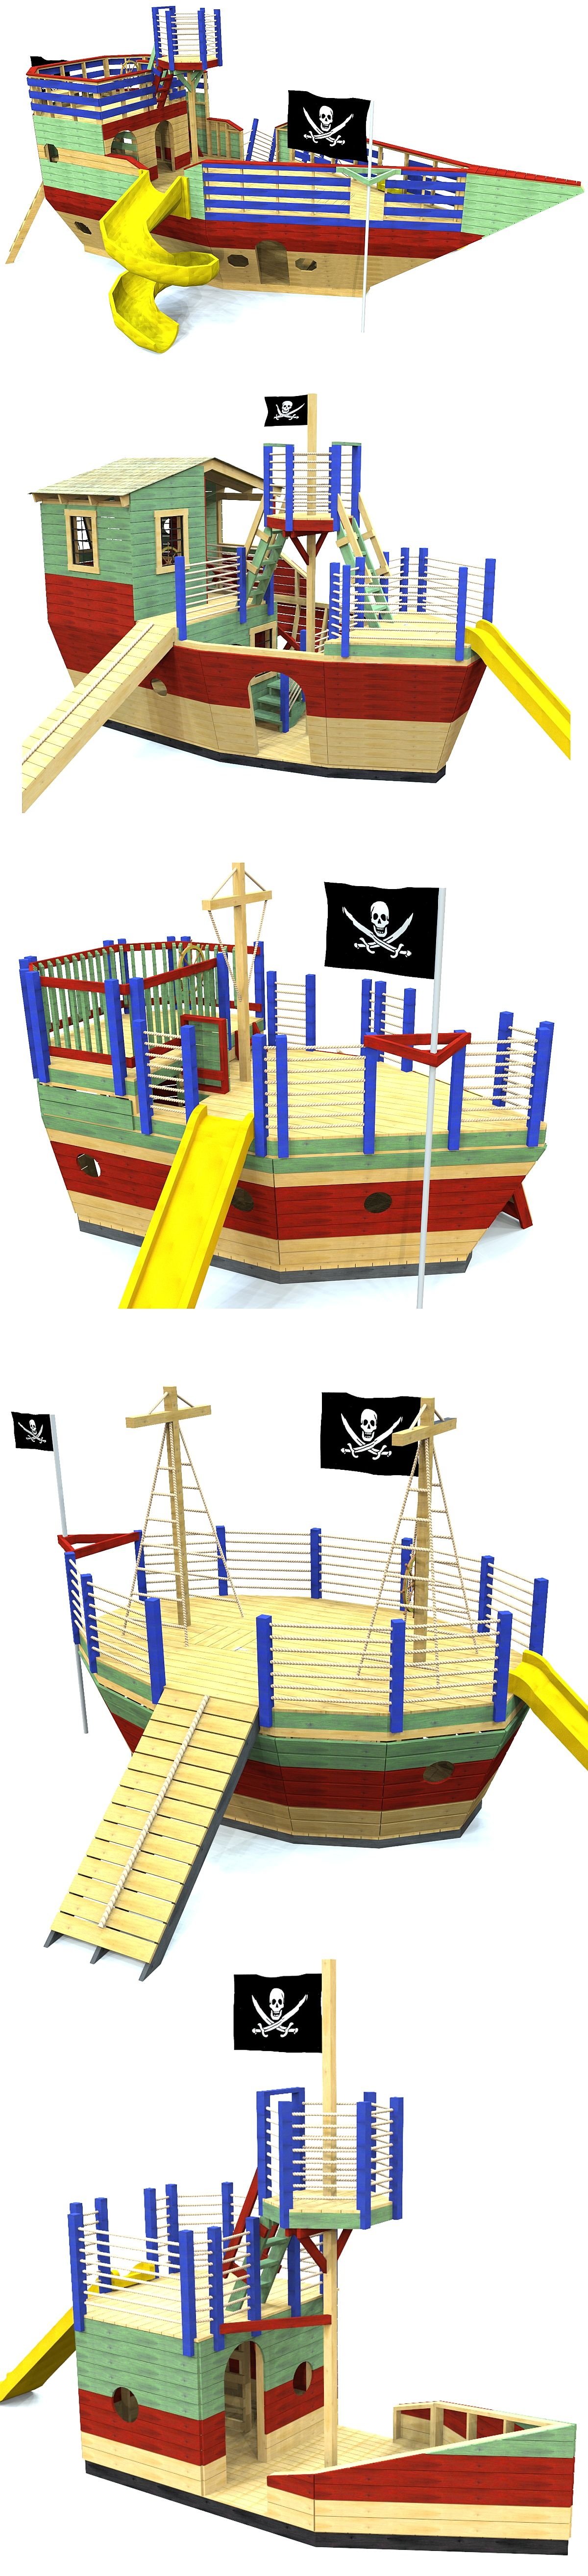 5 backyard pirate ship playhouse plans you can build download and four pirate ship designs ranging from large to small that you can build yourself save a ton of money by building it yourself solutioingenieria Choice Image